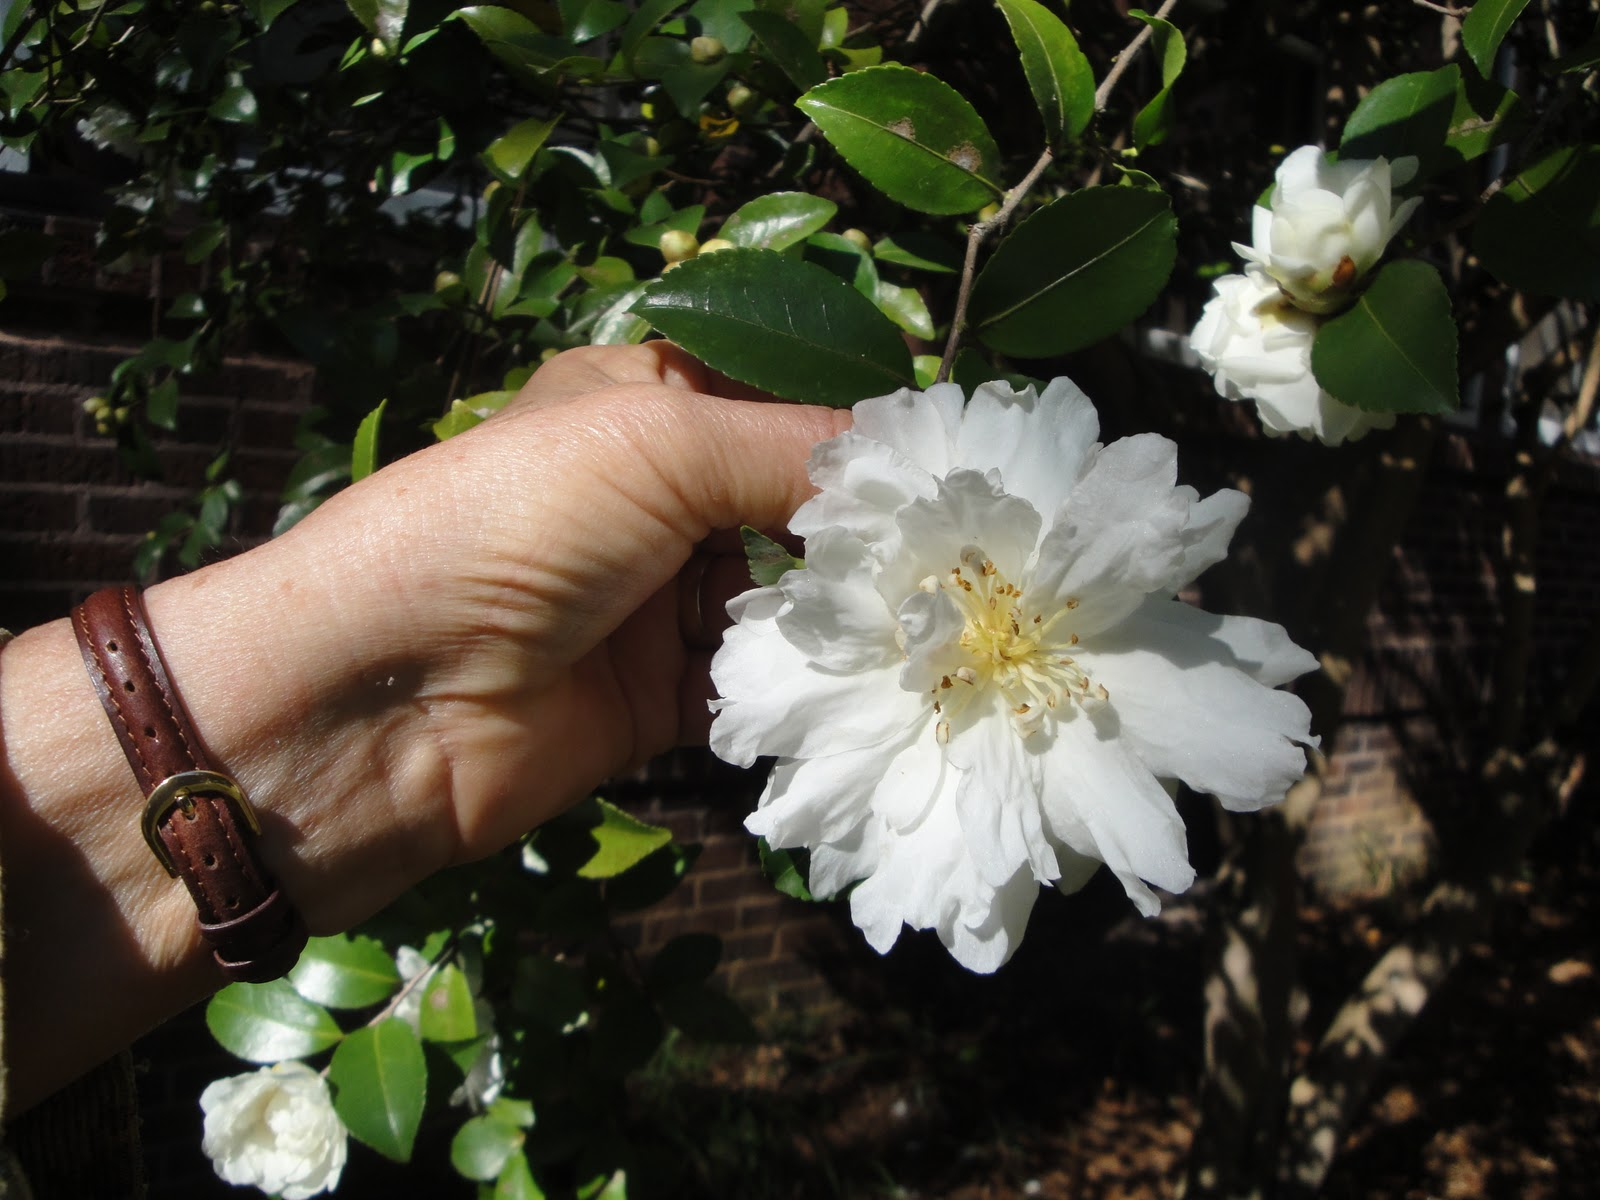 A camellia close-up.